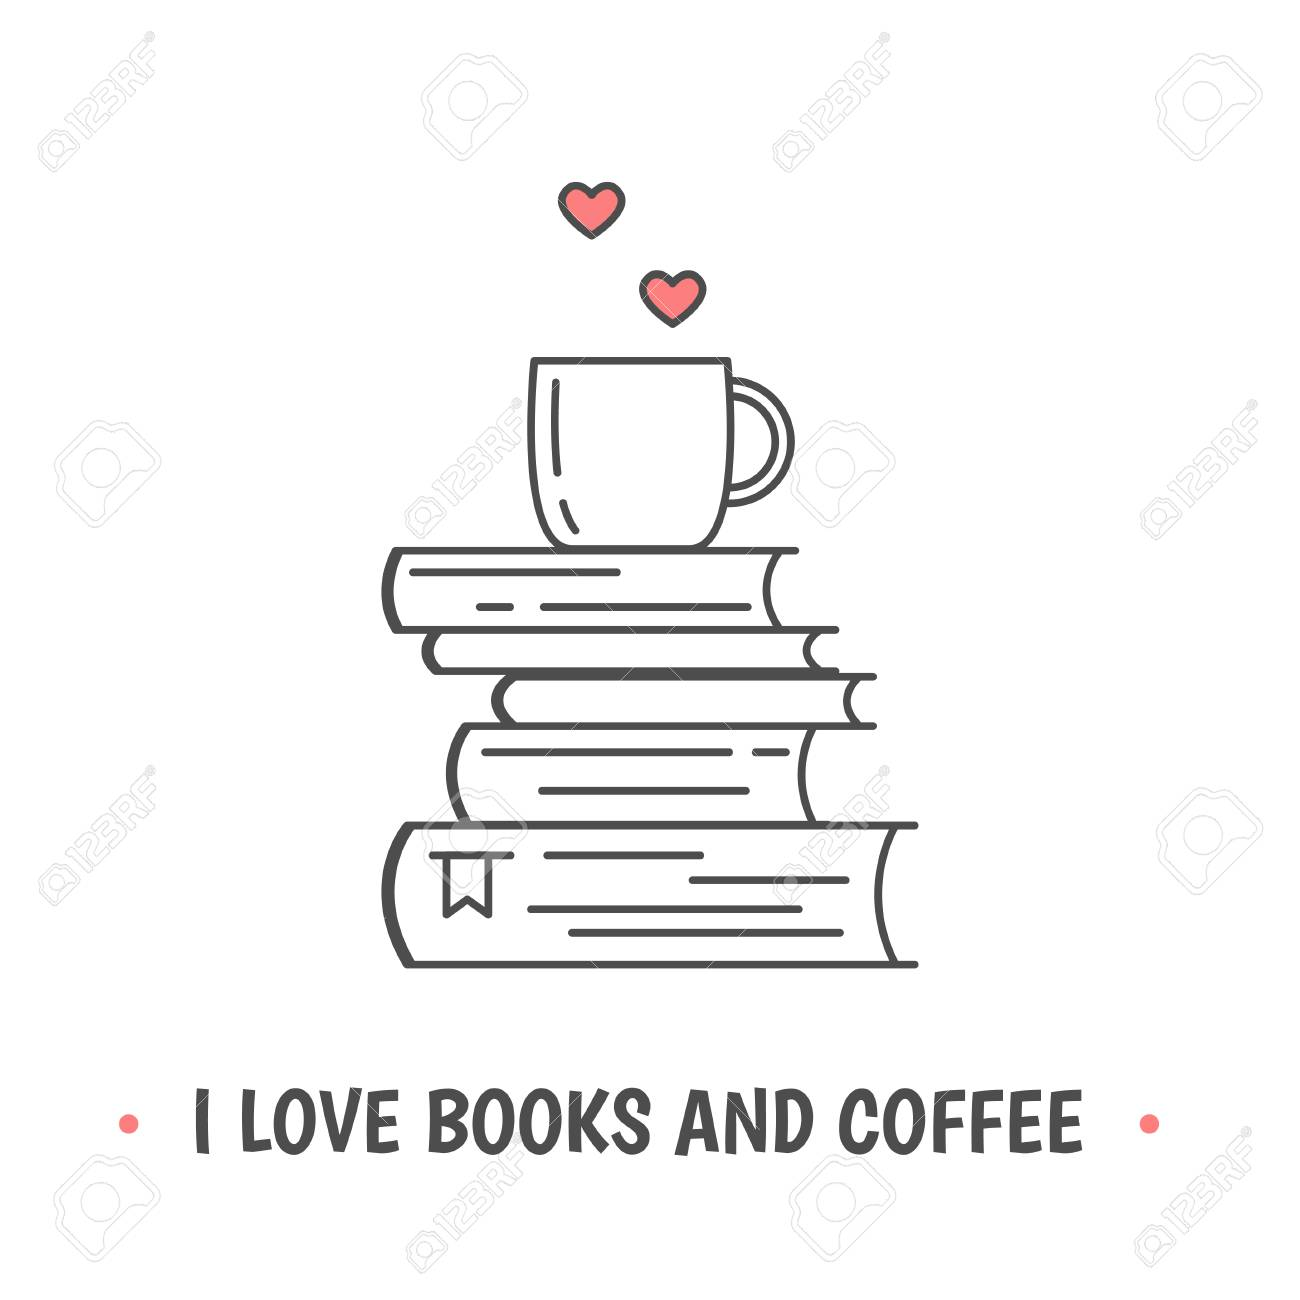 Pile Of Books And Tea Cup With Heart Symbols Quote I Love Books